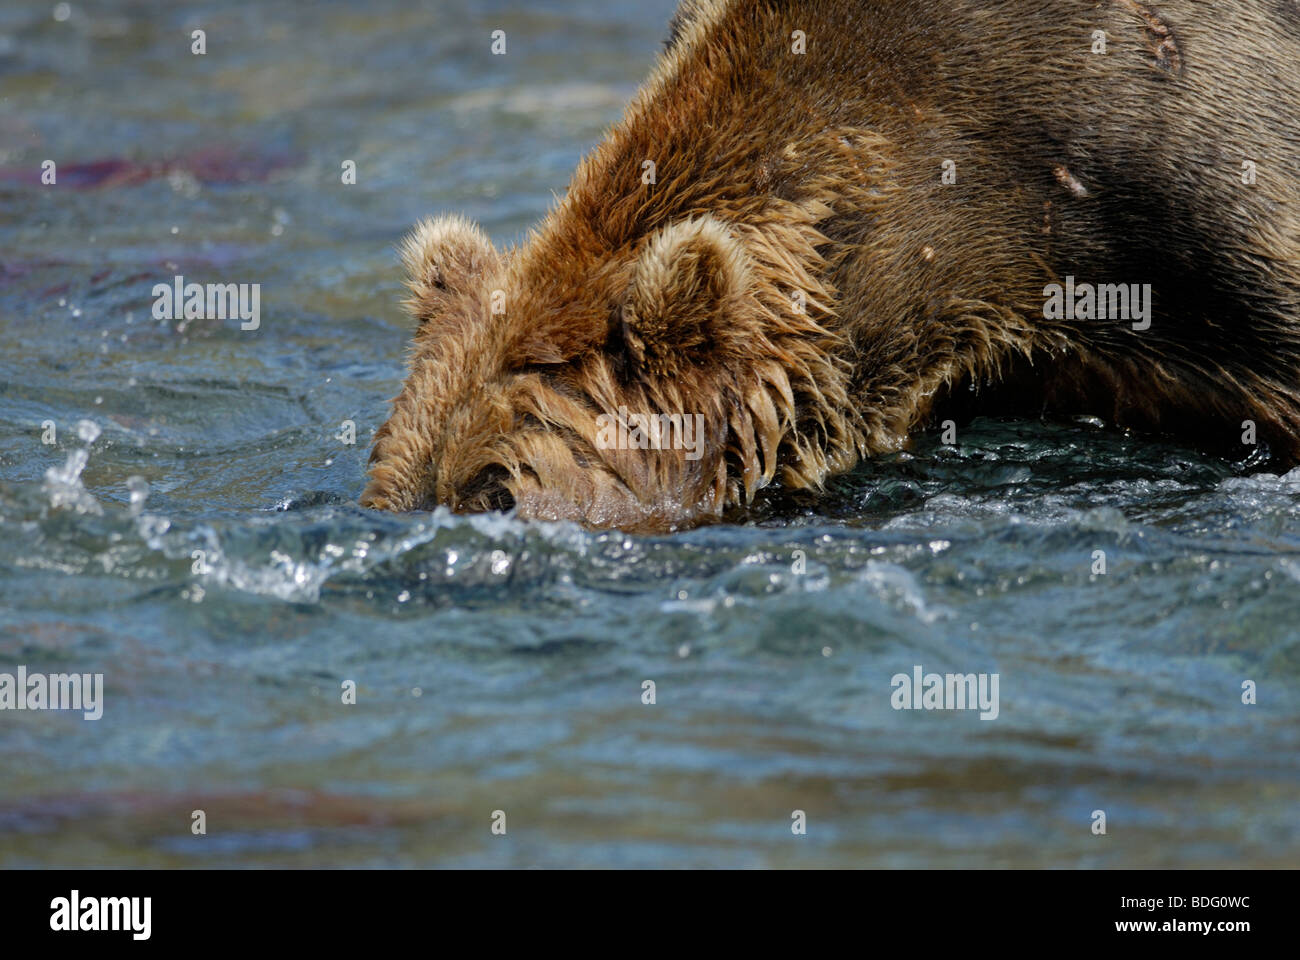 Brown bear (grizzly bear), Ursus arctos horribilis, head in water looking for salmon.  First in sequence with image - Stock Image